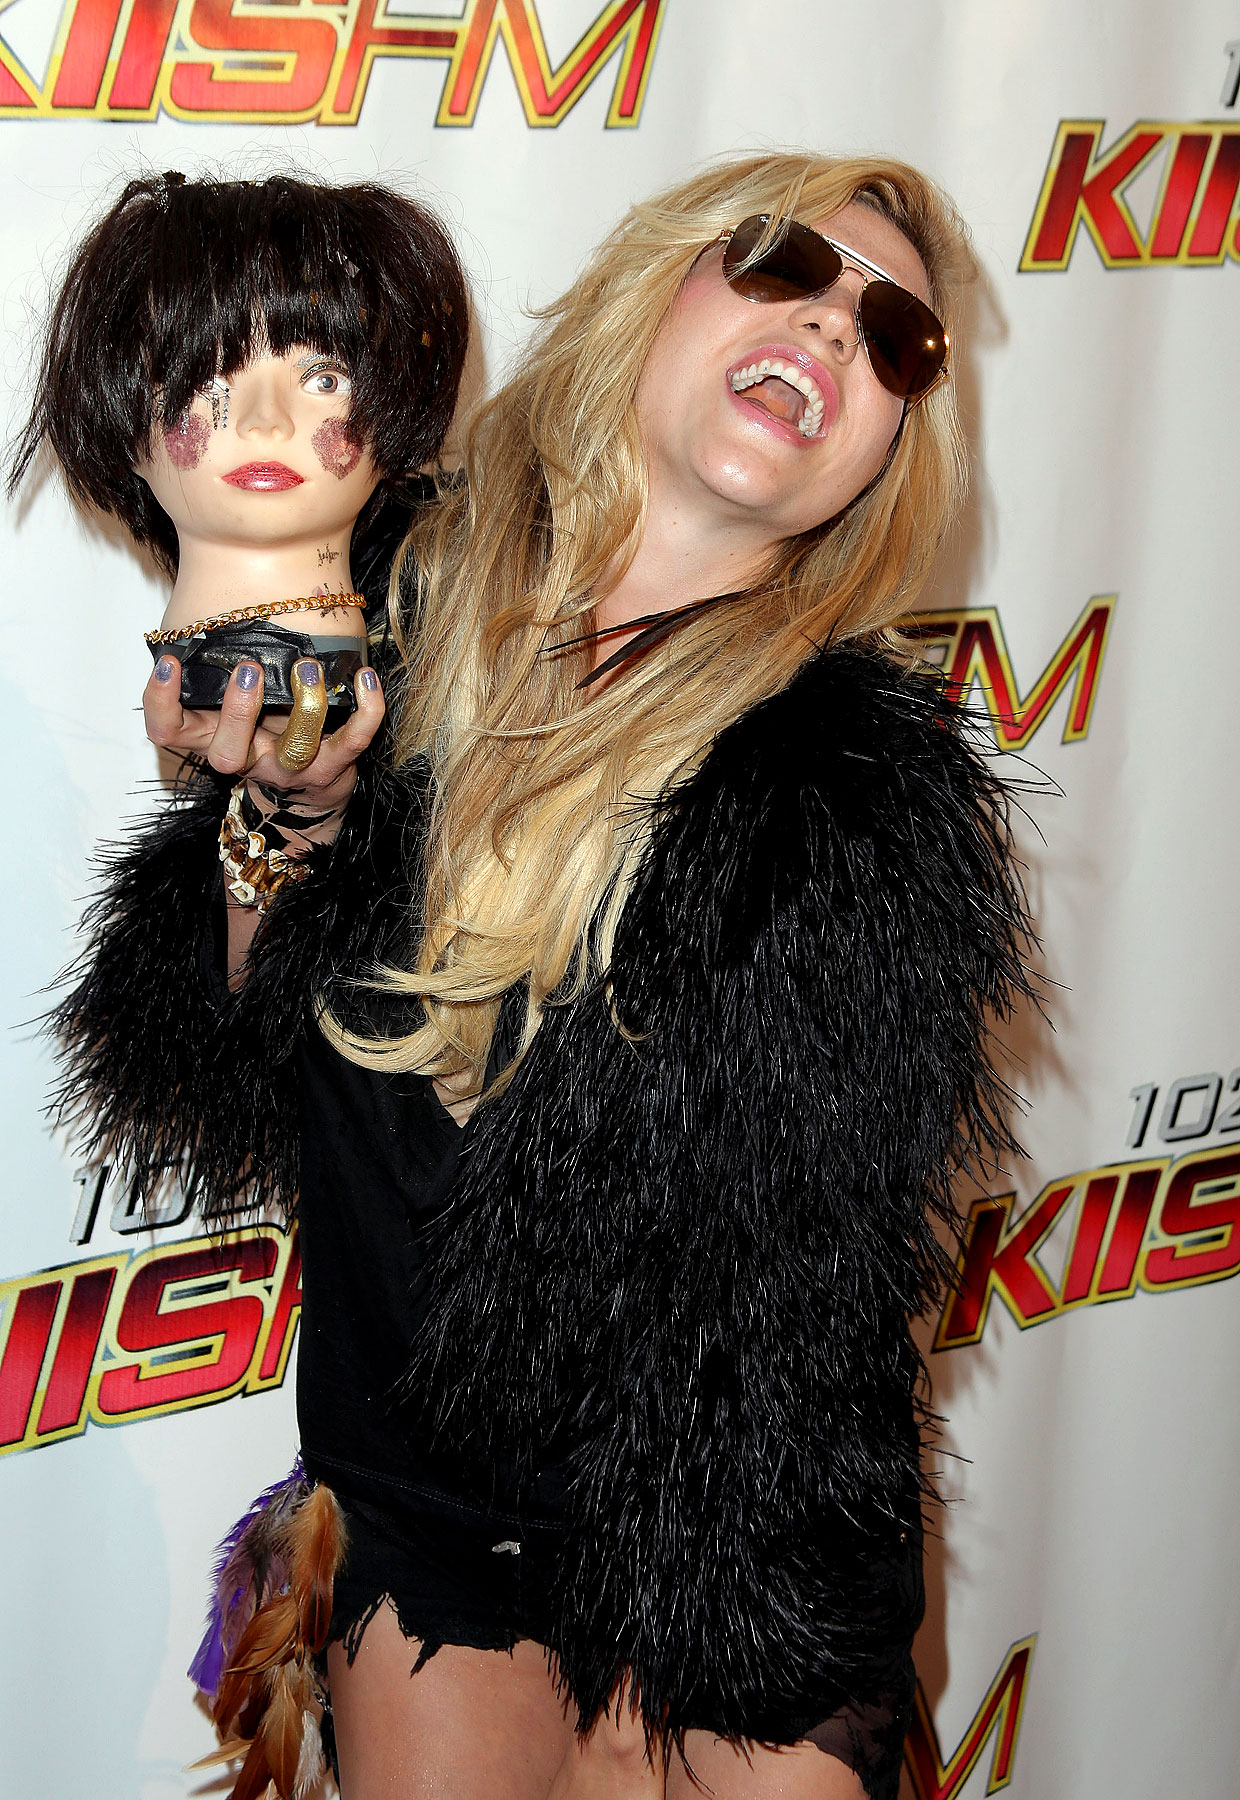 Kesha Accessorizes With Dismembered Head At Wango Tango (PHOTOS)